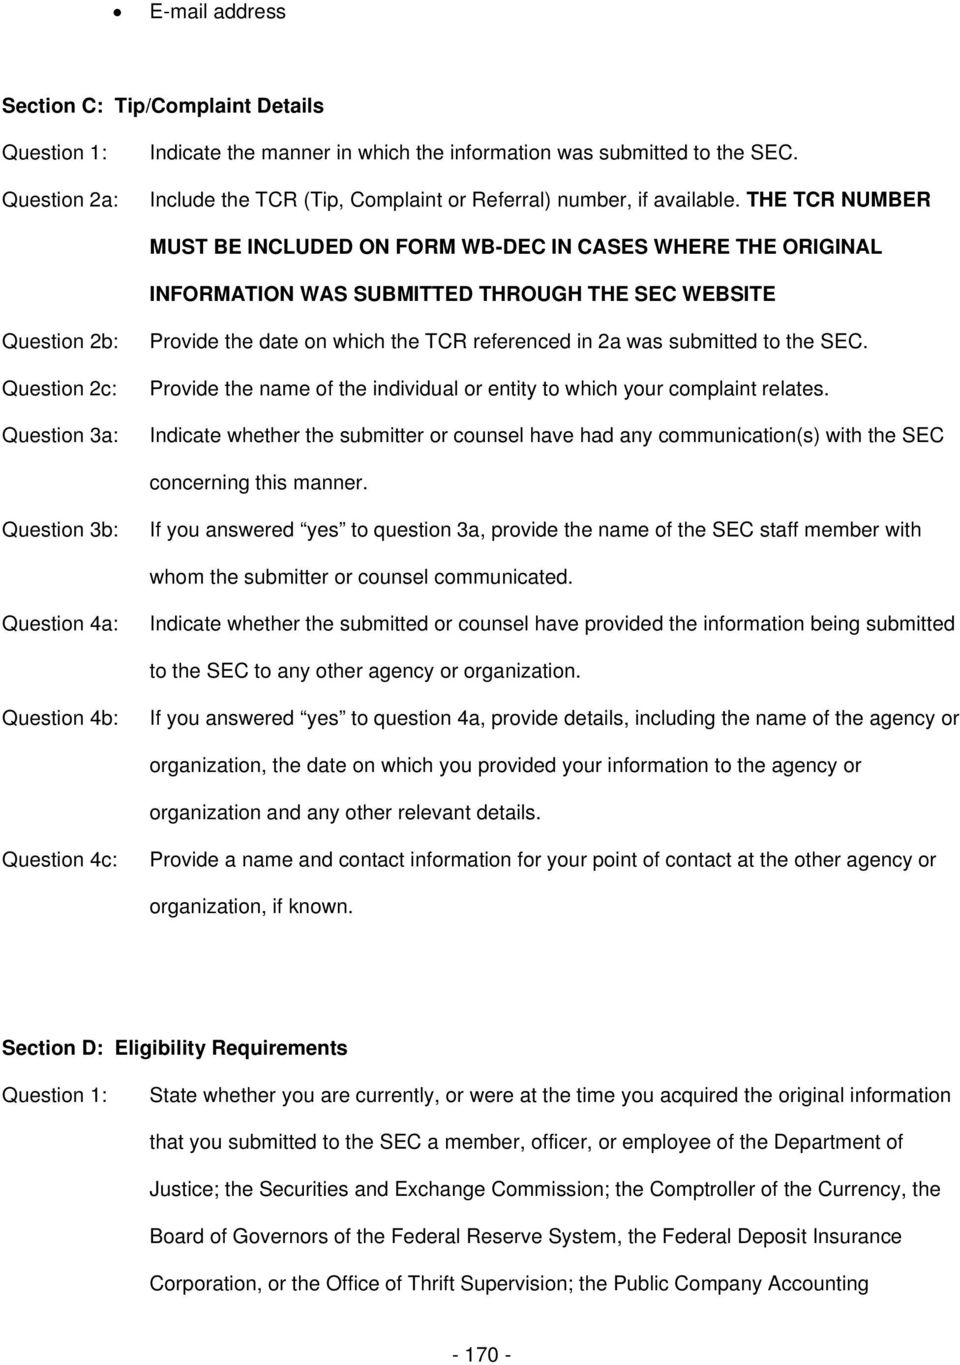 THE TCR NUMBER MUST BE INCLUDED ON FORM WB-DEC IN CASES WHERE THE ORIGINAL INFORMATION WAS SUBMITTED THROUGH THE SEC WEBSITE Questin 2b: Questin 2c: Questin 3a: Prvide the date n which the TCR